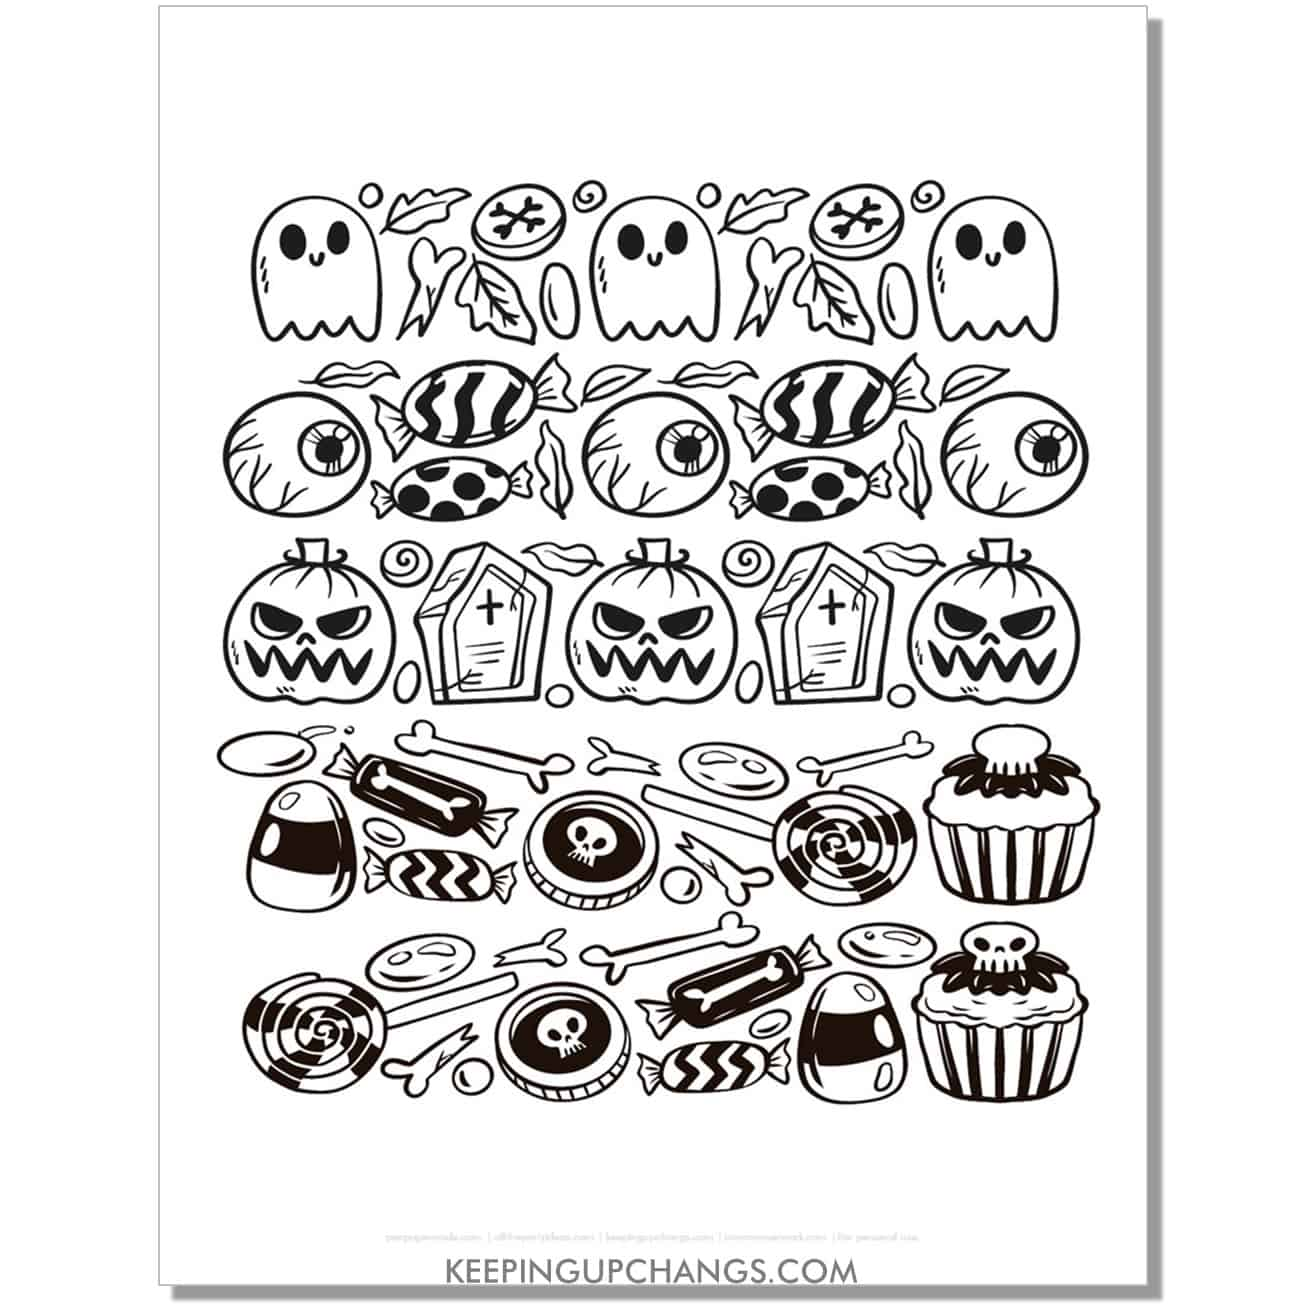 free halloween drawings of ghosts, eyeballs, jack o latern coloring page.